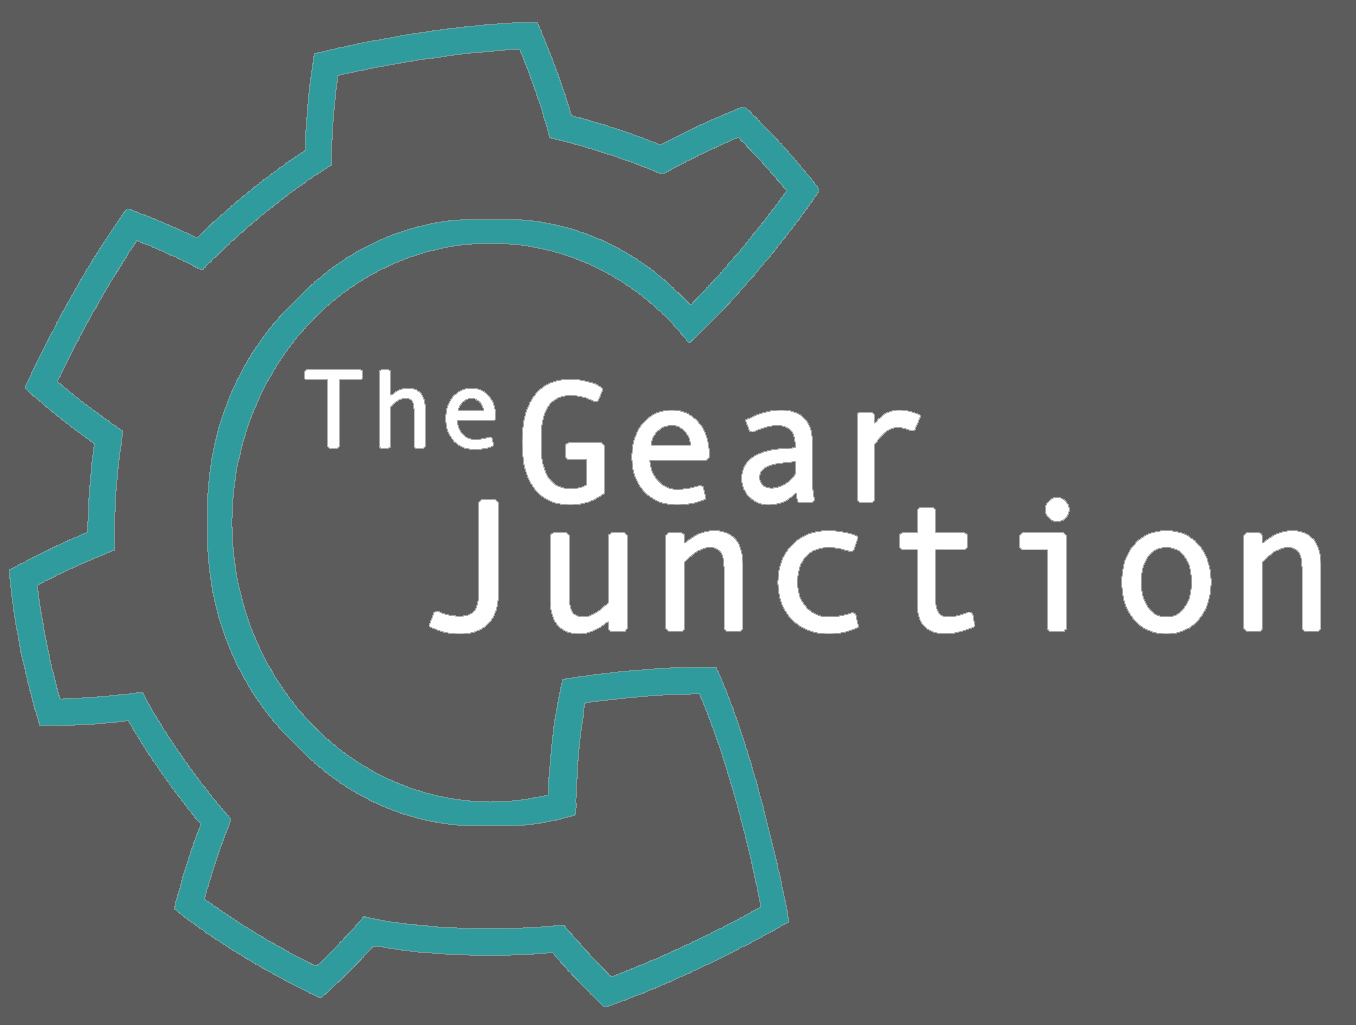 The Gear Junction